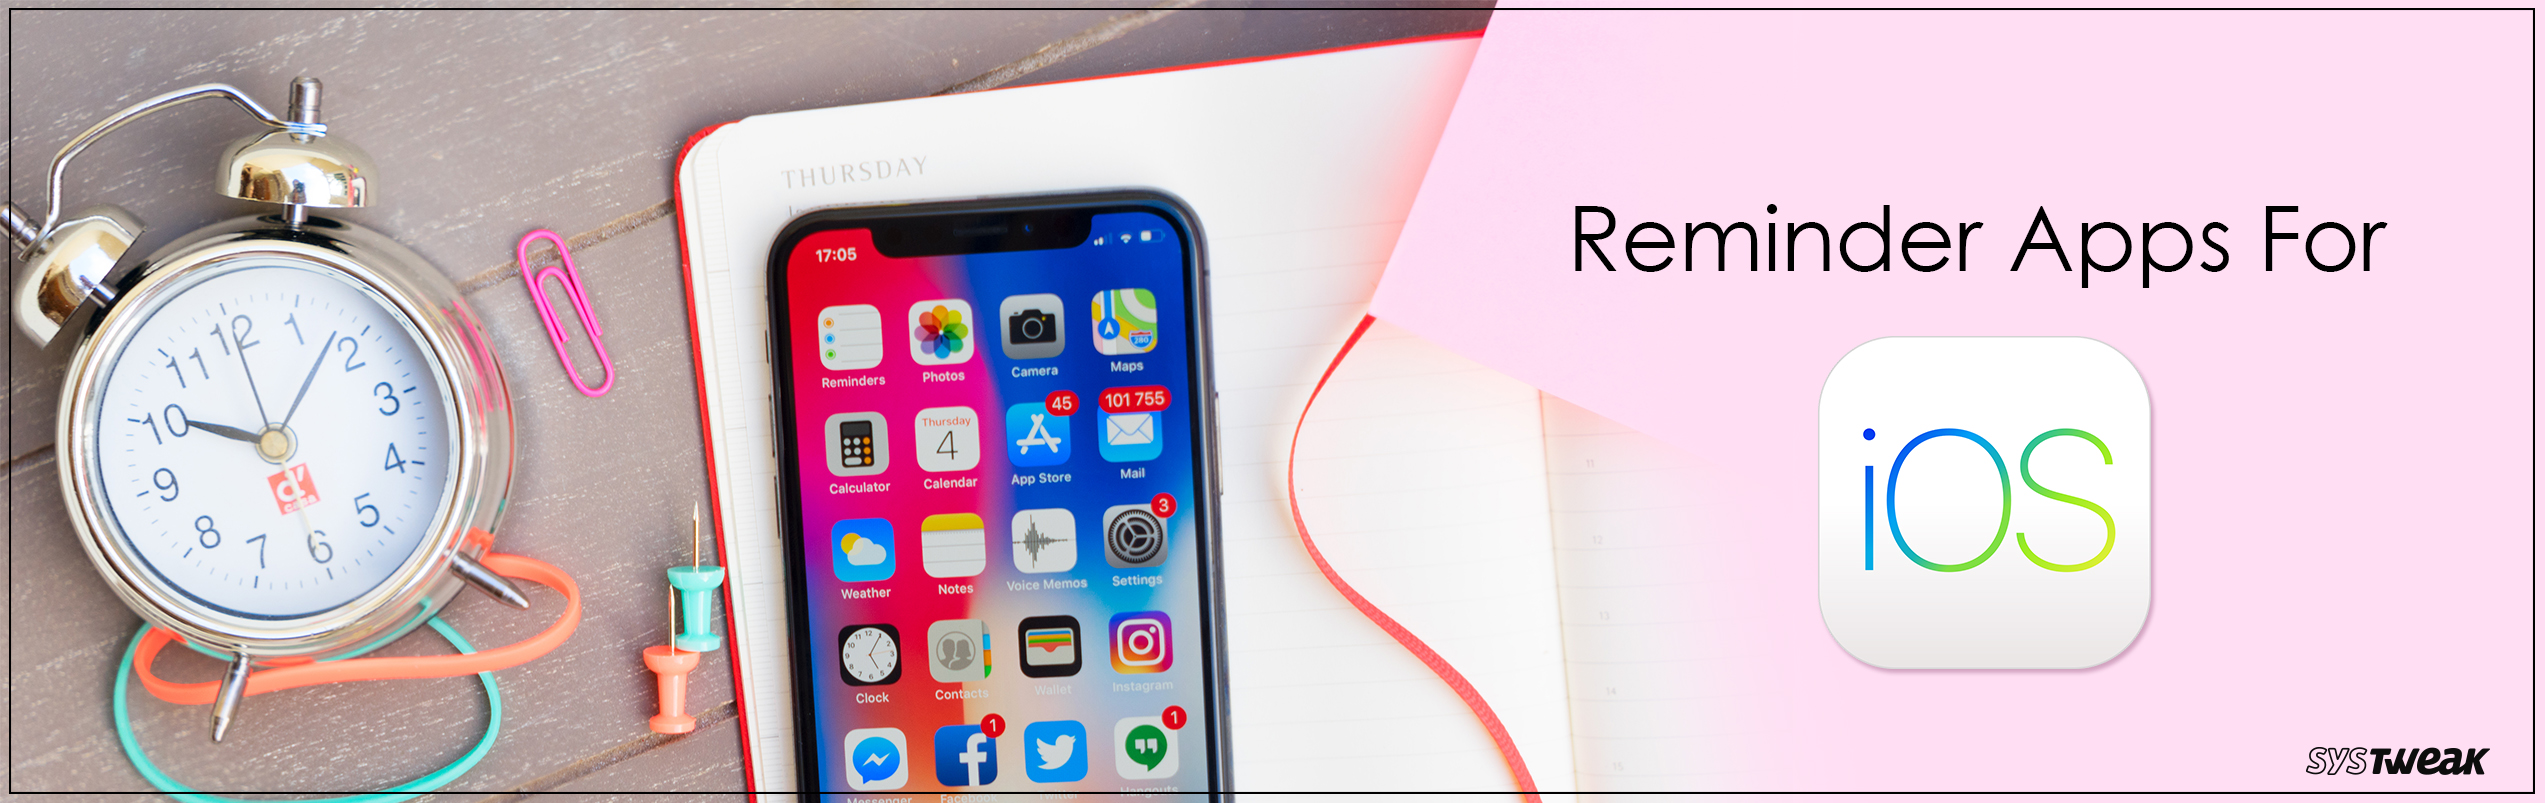 Best Reminder Apps For iPhone 2018